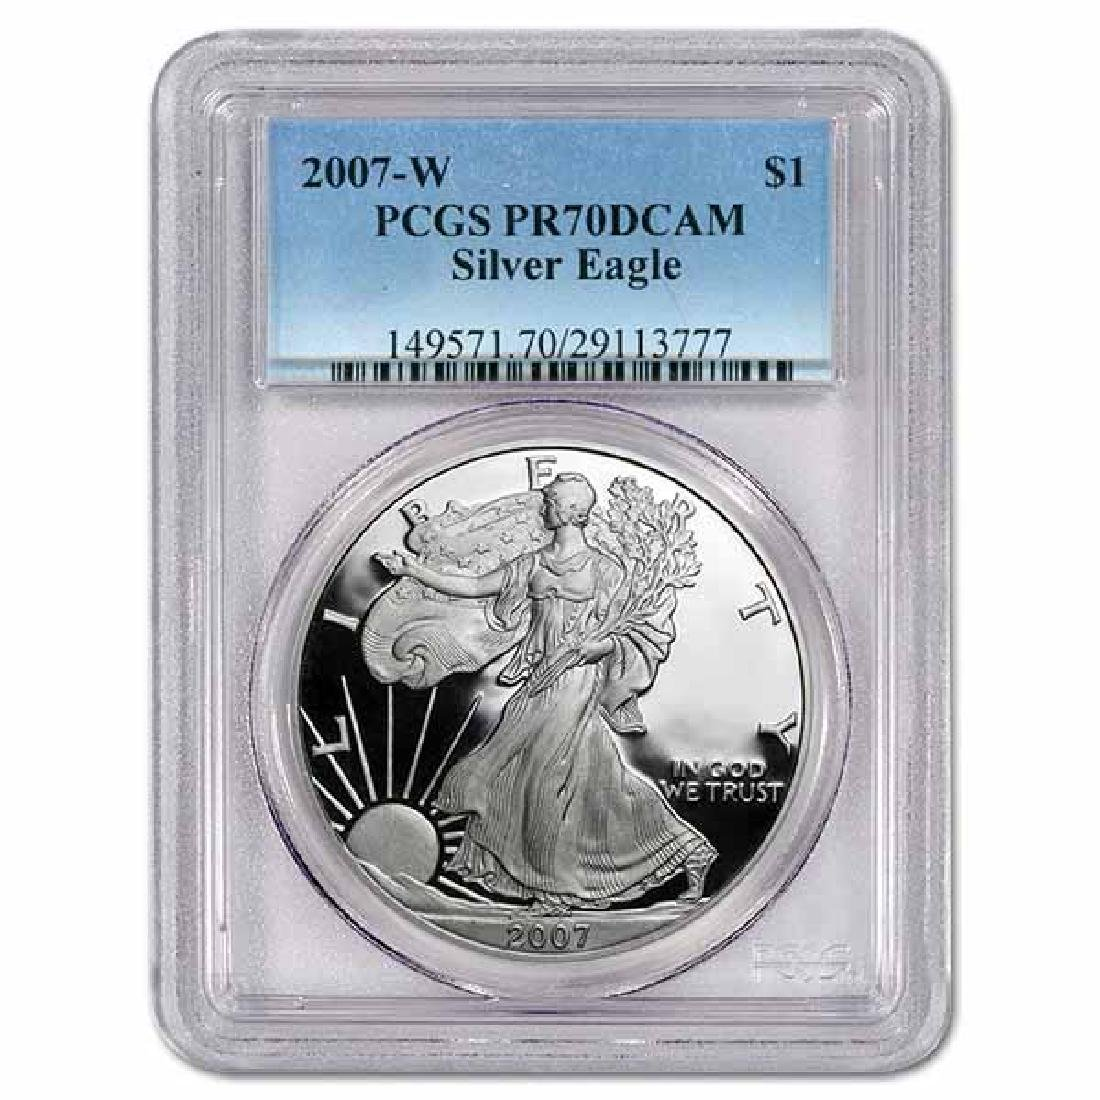 Certified Proof Silver Eagle 2007-W PR70DCAM PCGS